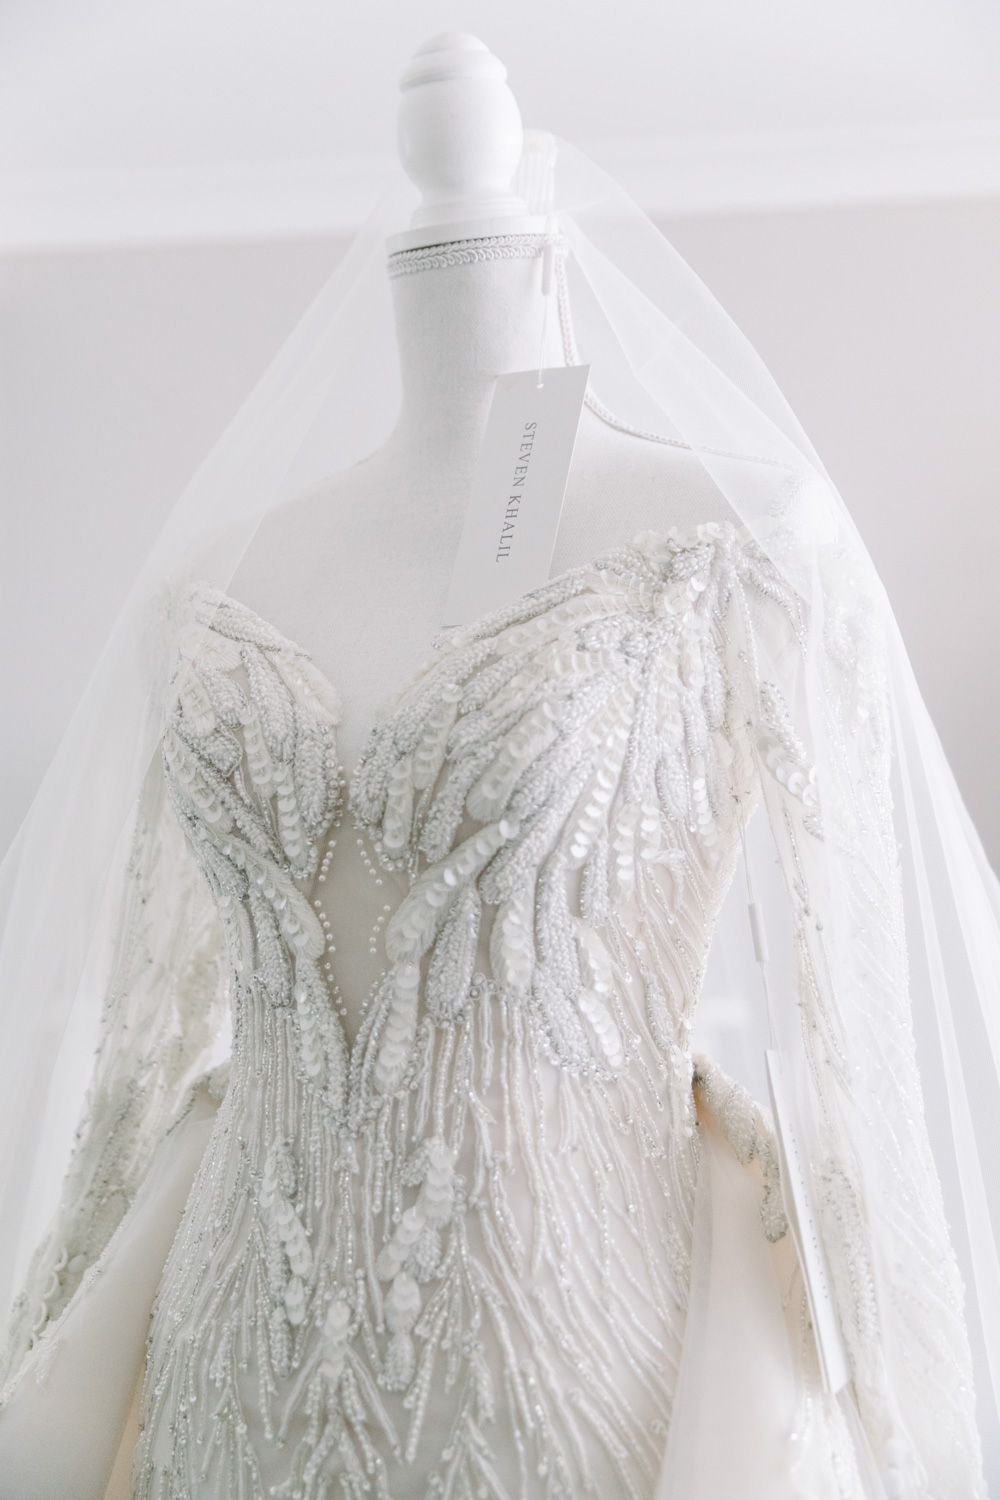 This is a photo of the wedding gown, the brand is steven khalil